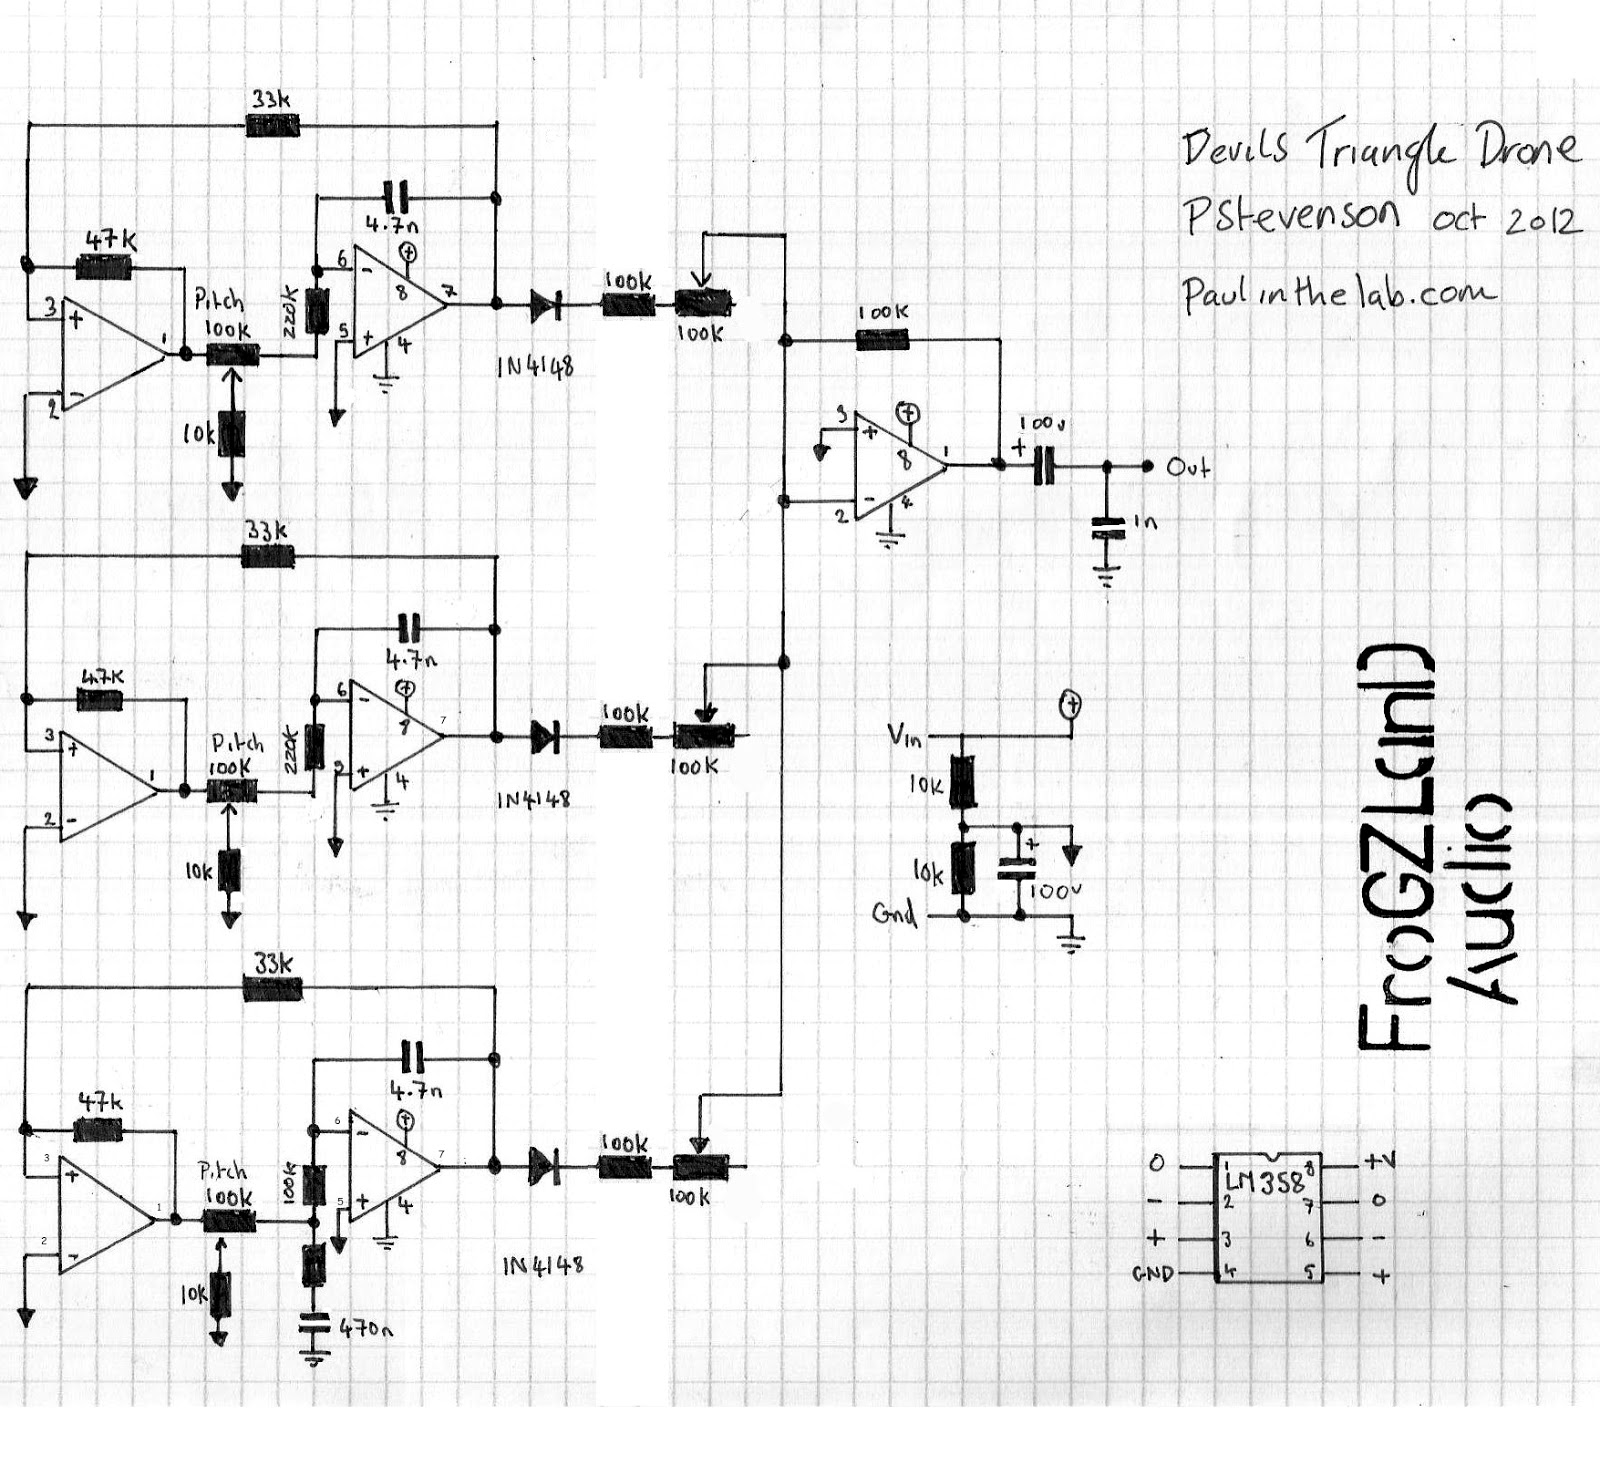 Drone Schematic Diagram moreover Drone Camera Wiring Diagram also APM Quad Wiring Diagram likewise Quadcopter Motor Wiring Diagram in addition Raspberry Pi Schematic Diagram. on drone wiring diagram